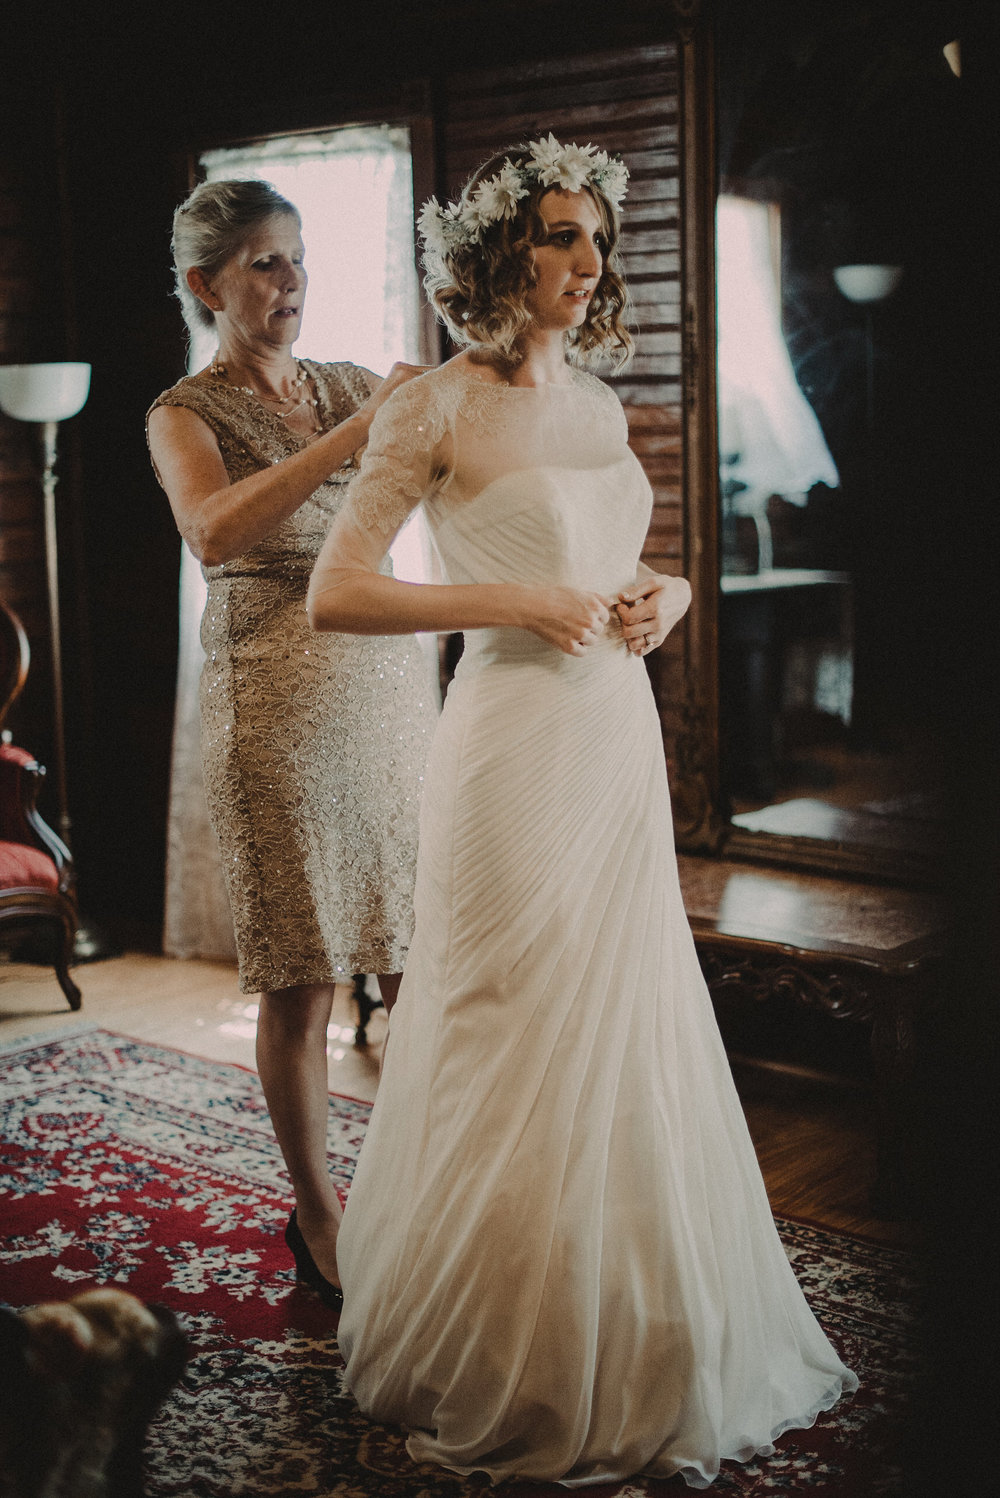 Mother helping bride get dressed